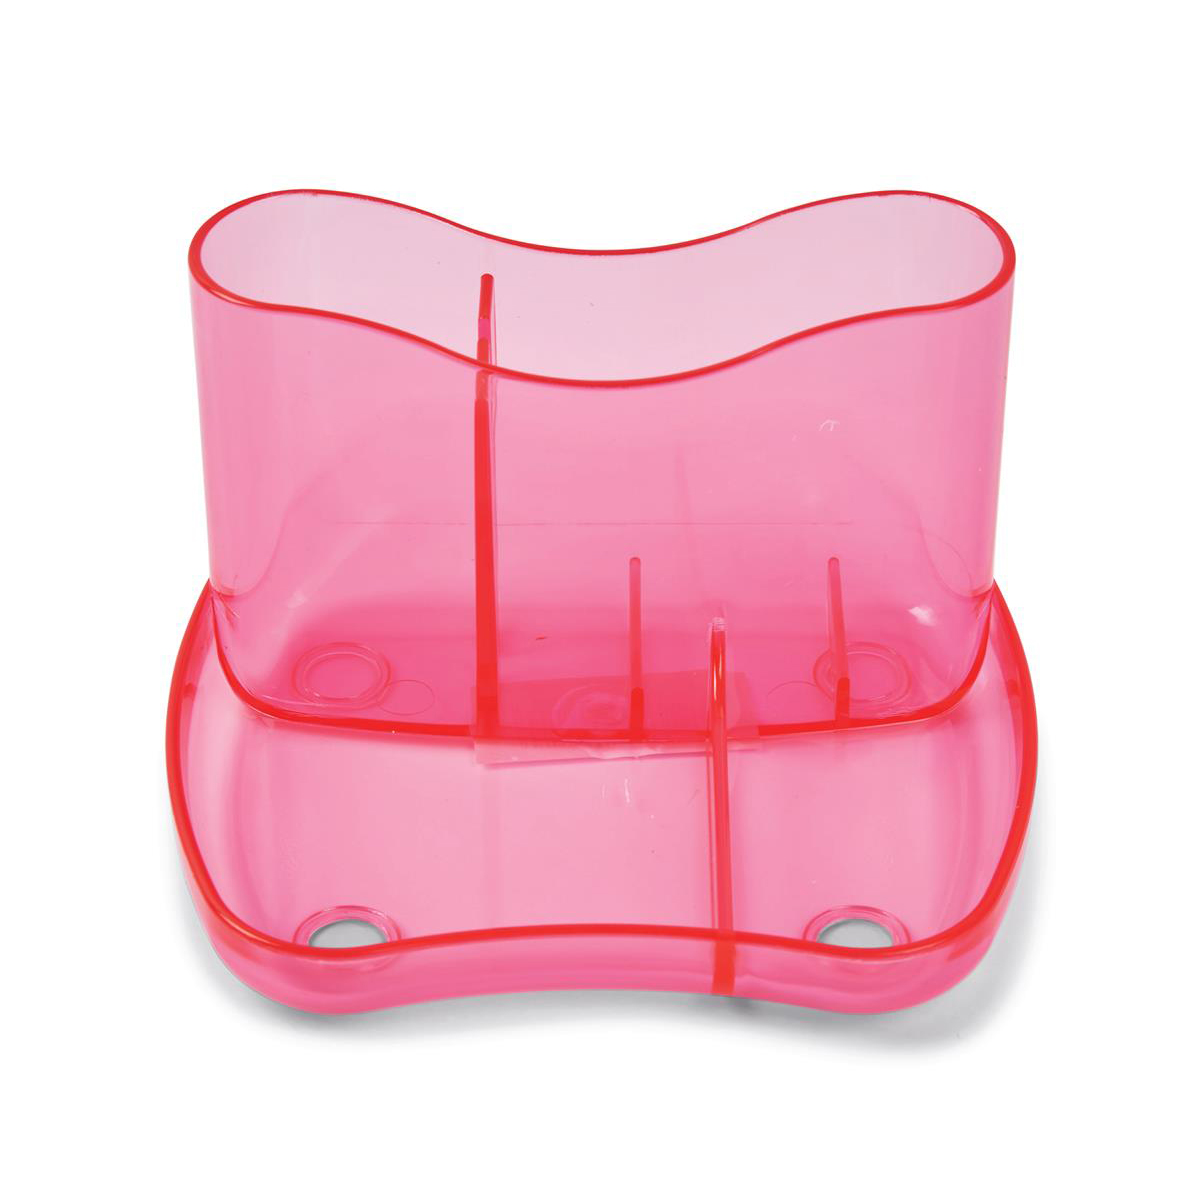 Desk Organiser 4 Compartments 93mm High Ice Pink